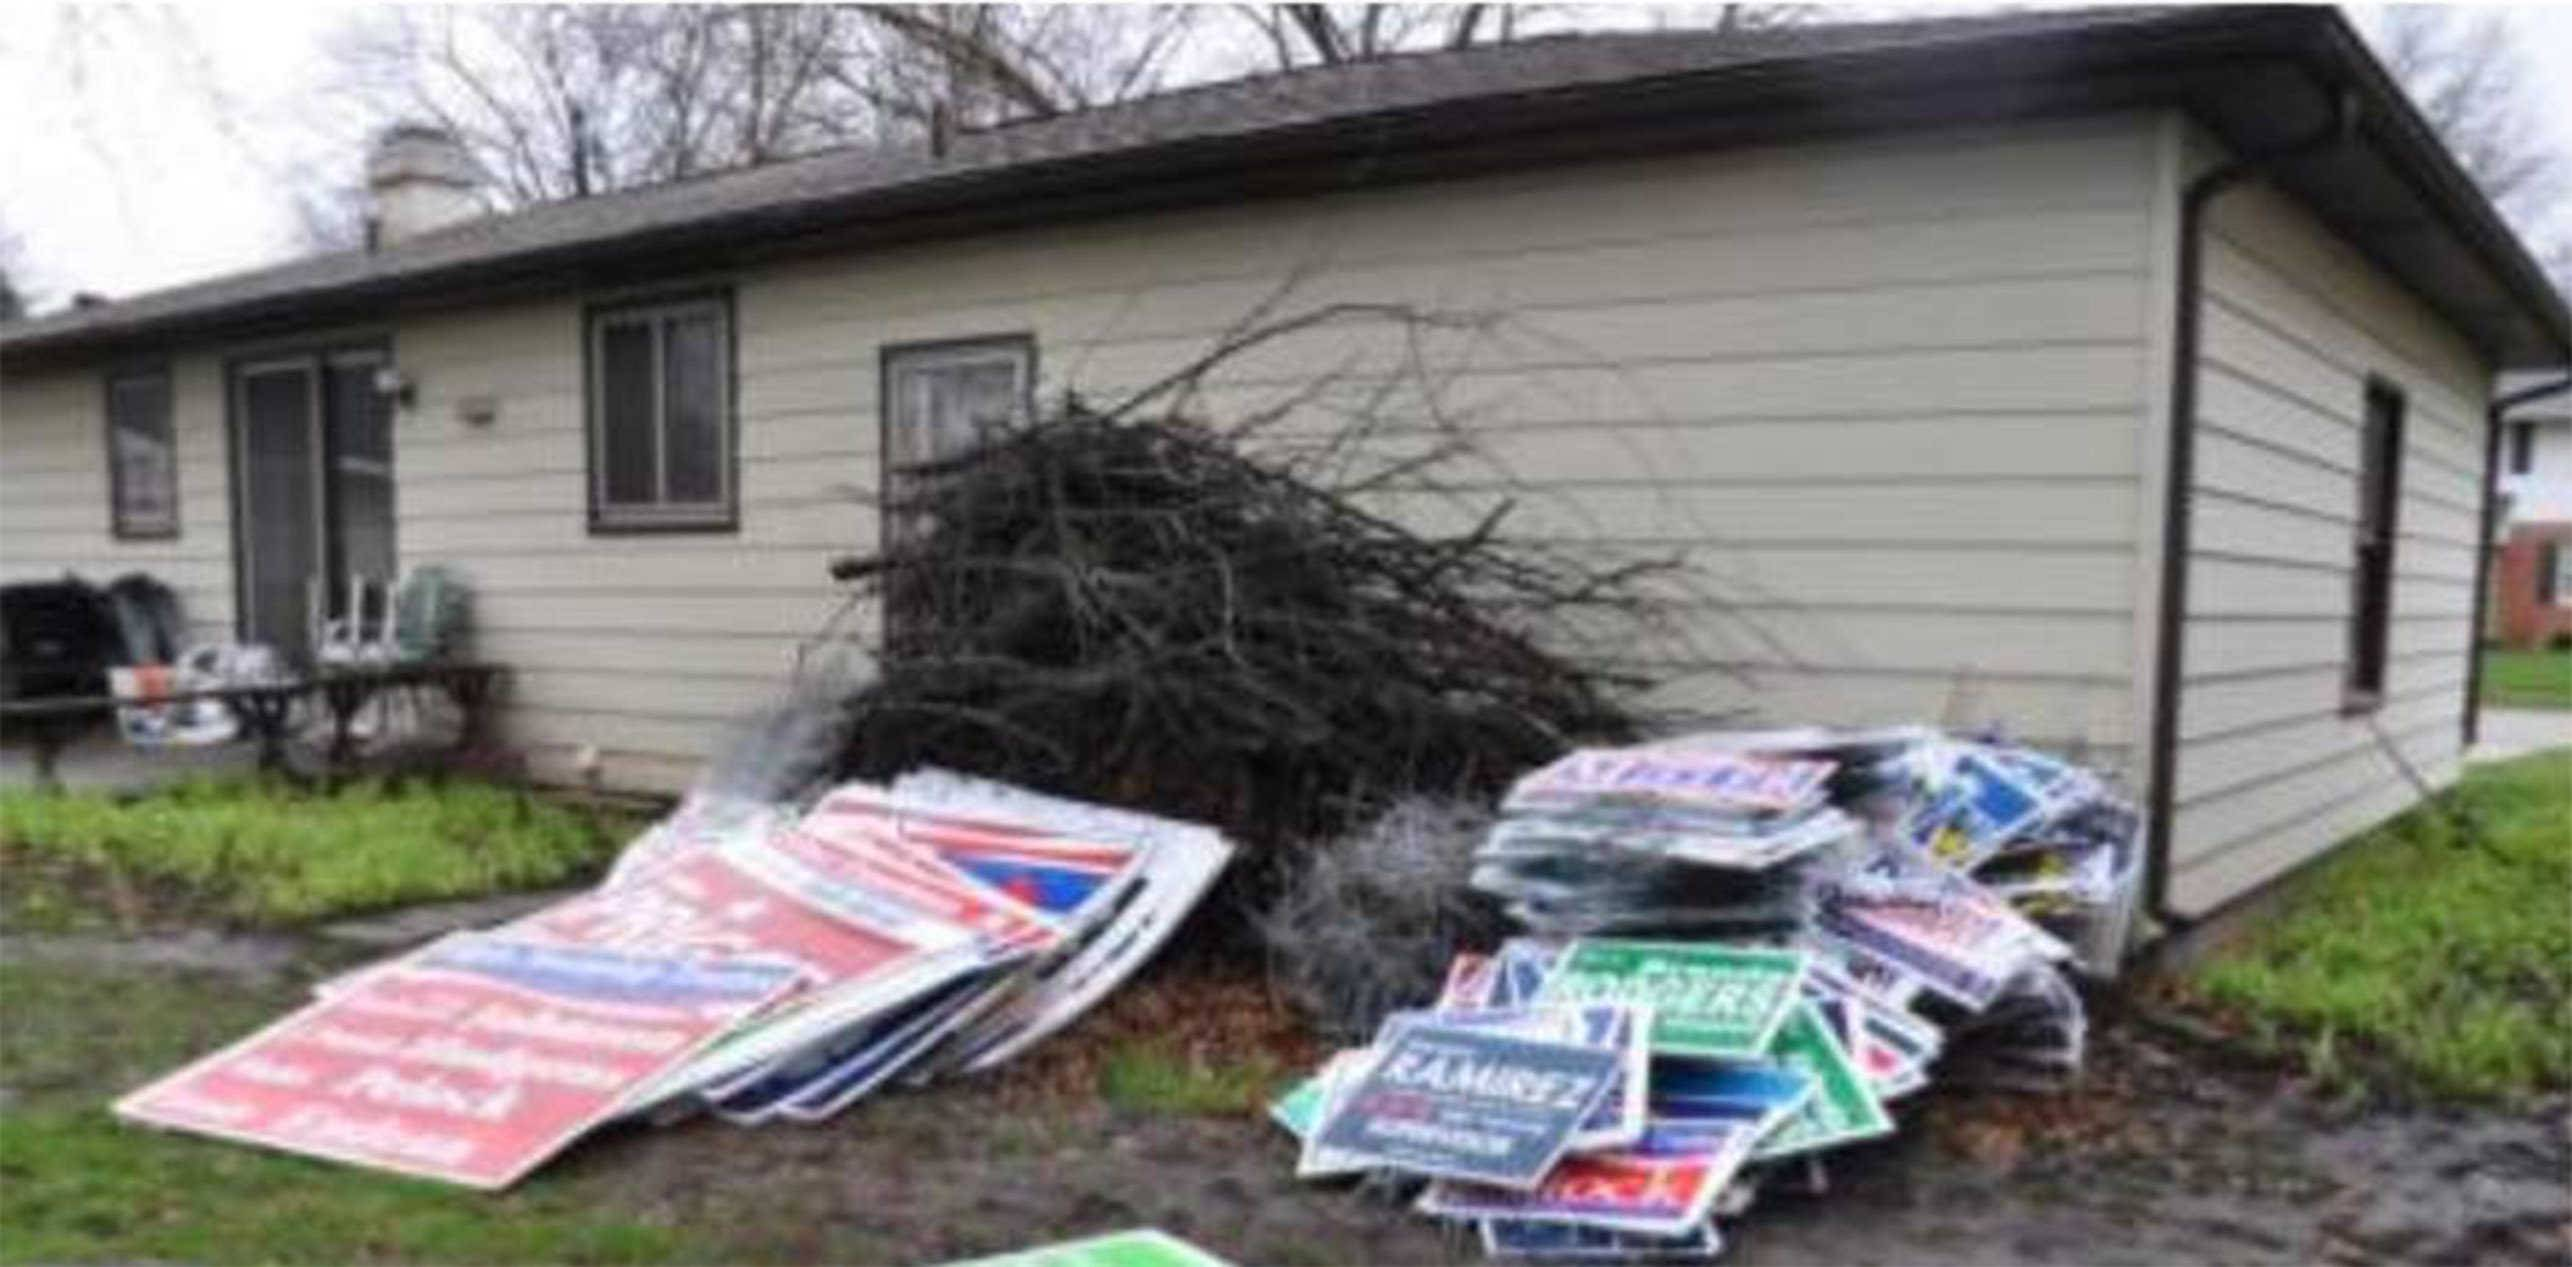 Authorities say they found hundreds of stolen campaign signs at Randy Hopp's home in Elgin.